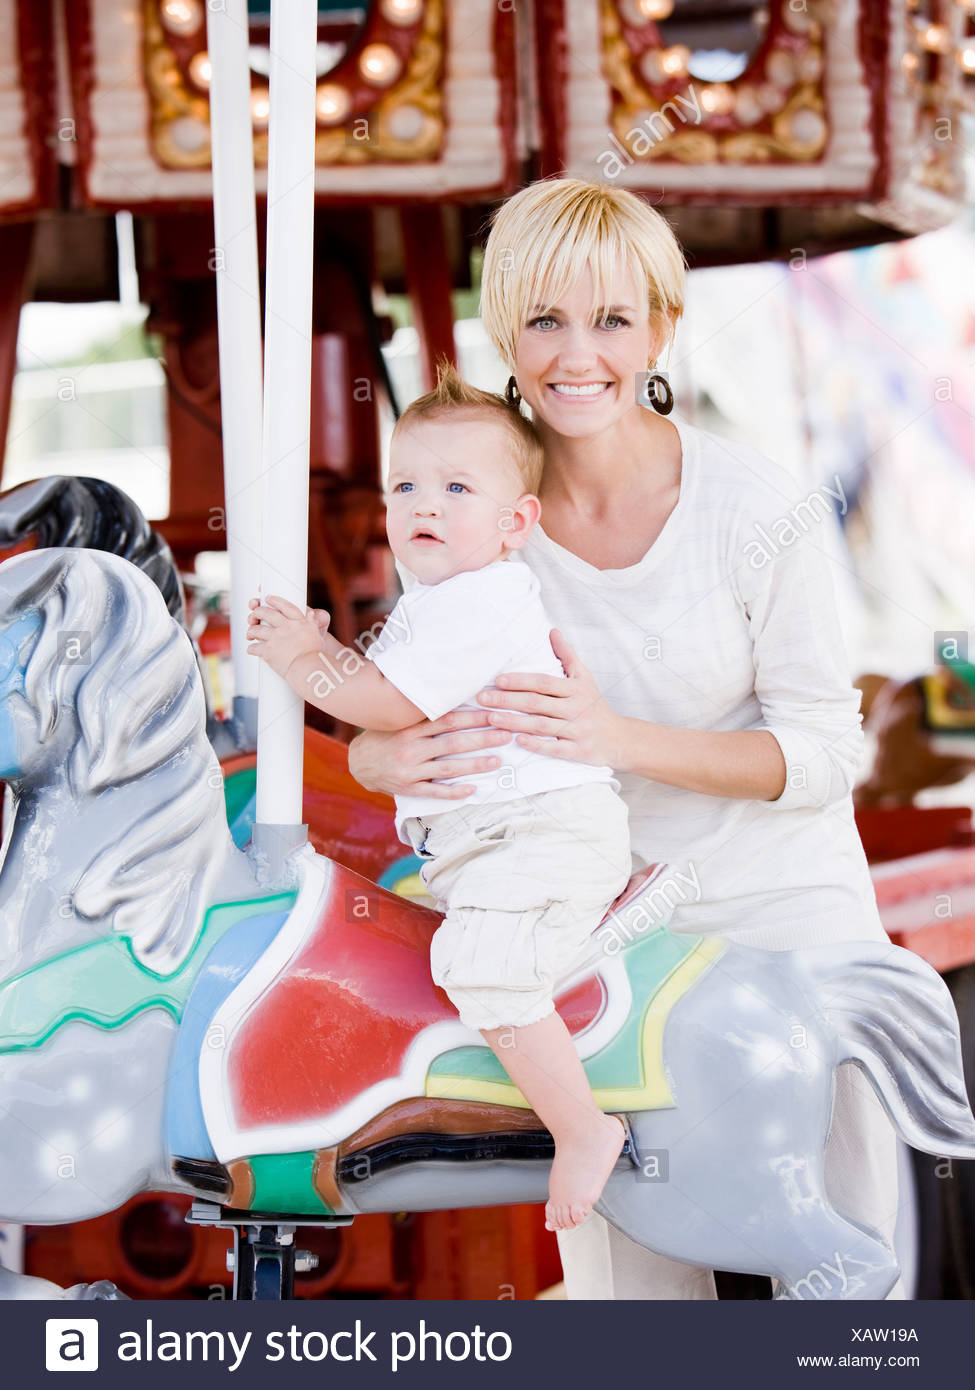 mother and baby on a merry-go-round - Stock Image